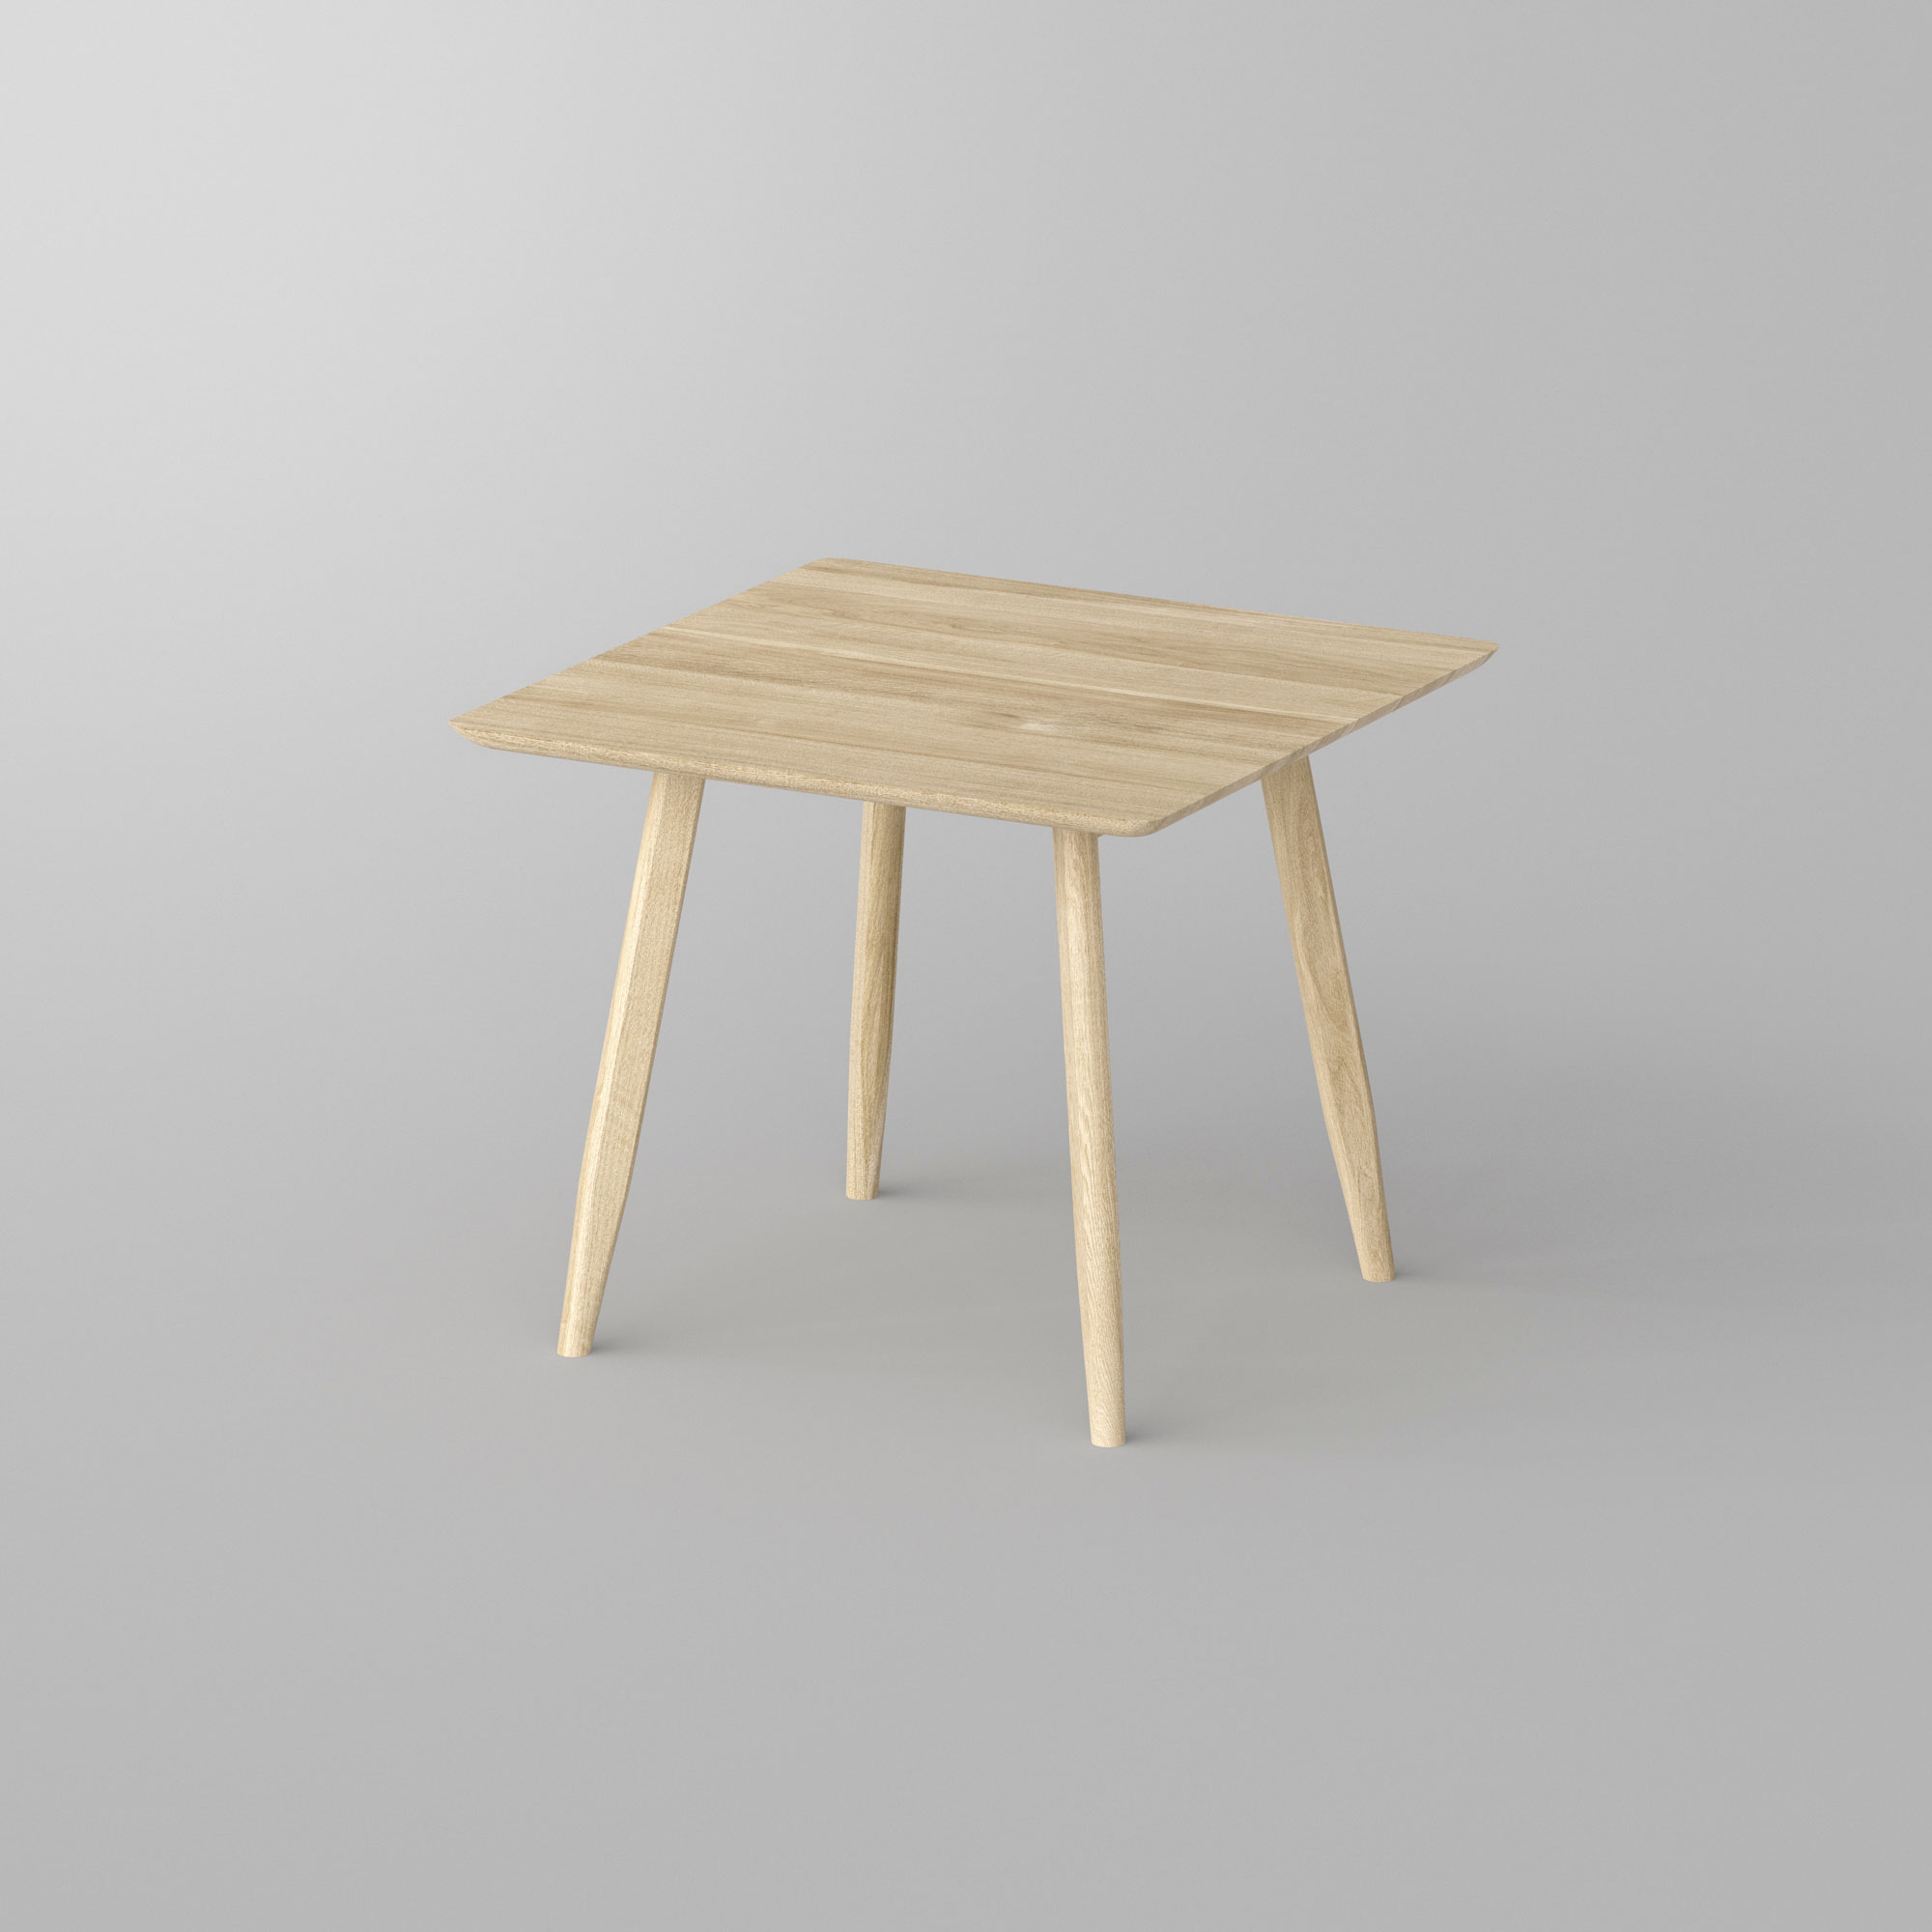 Designer Dining Table Wood AETAS BASIC 3 custom made in solid wood by vitamin design